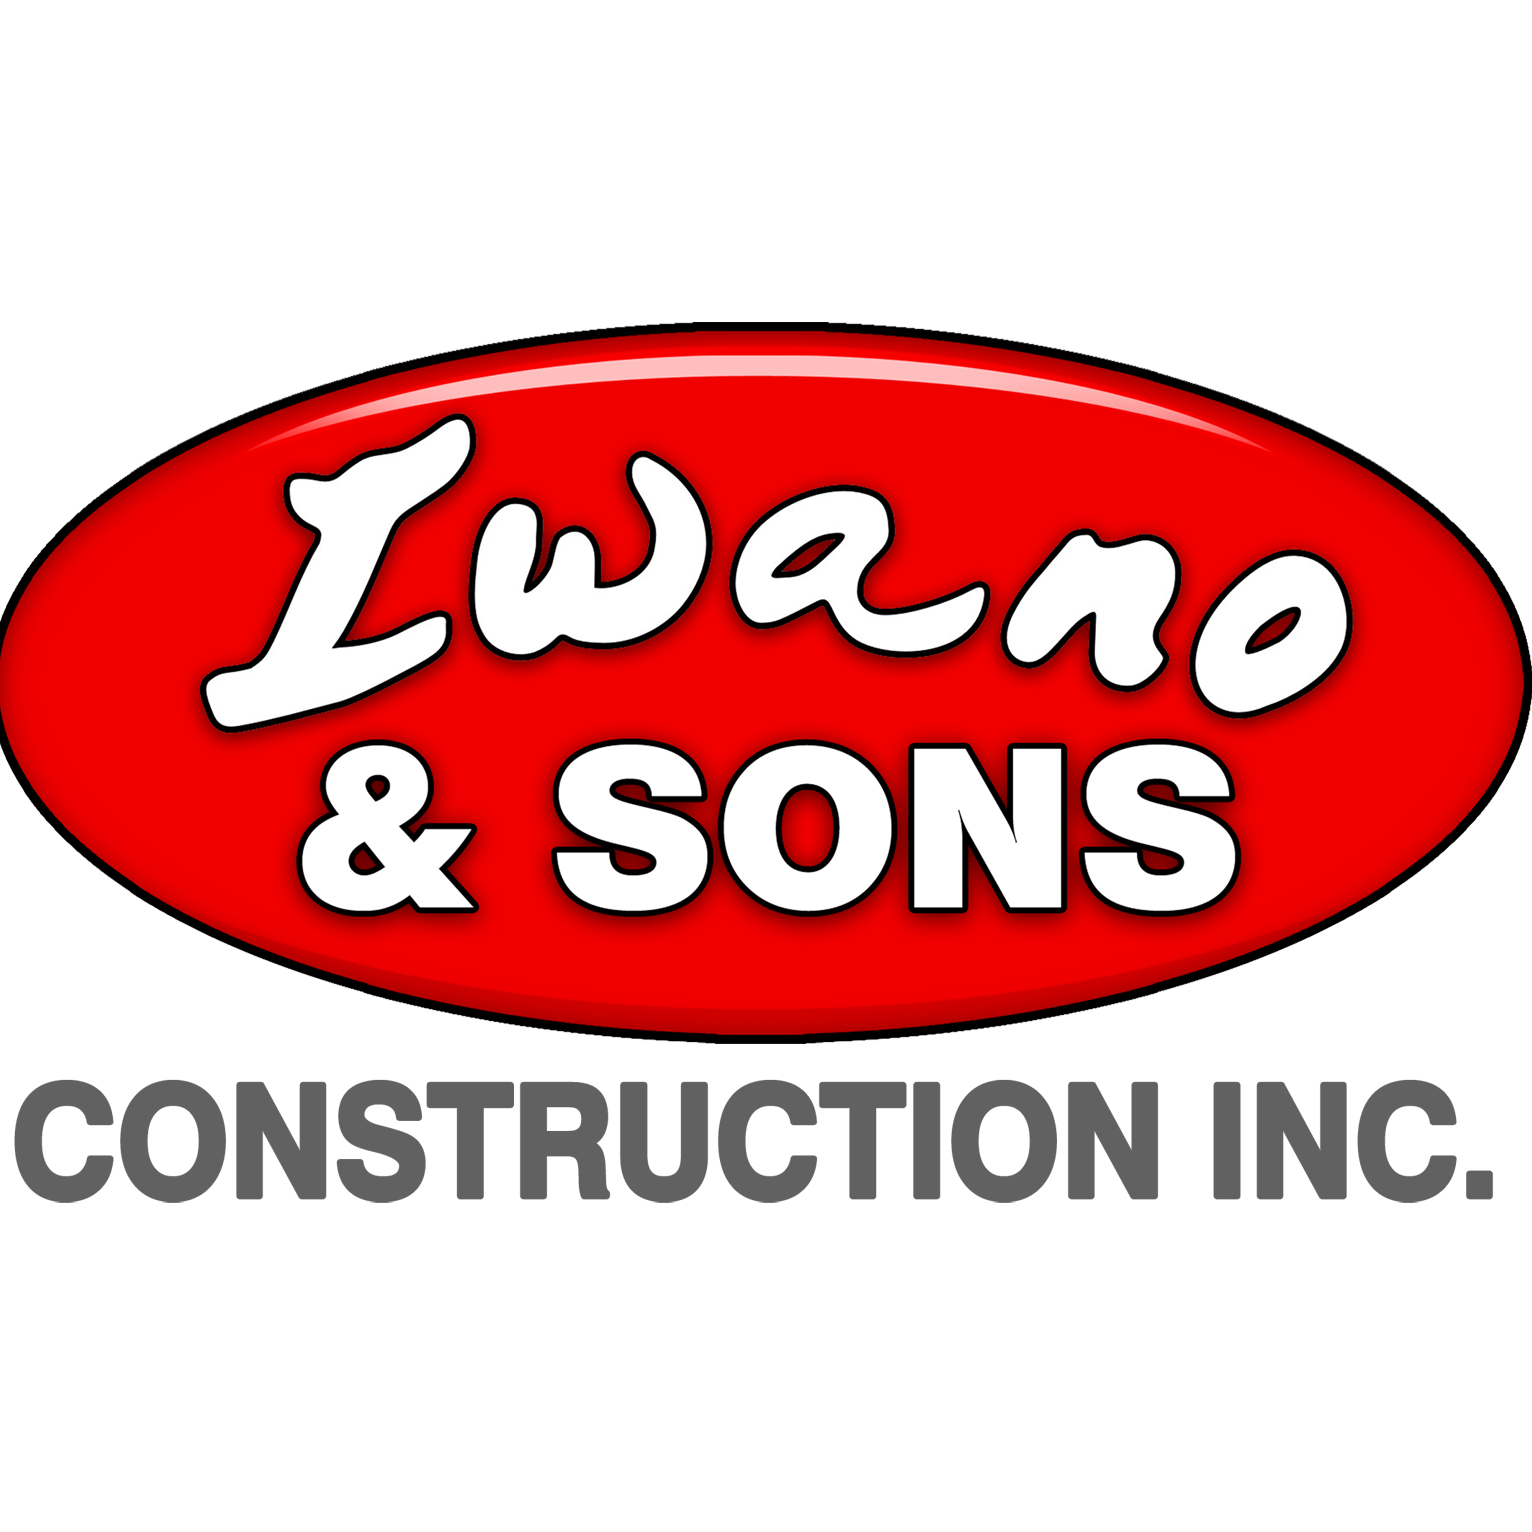 Iwano and Sons Construction, Inc.